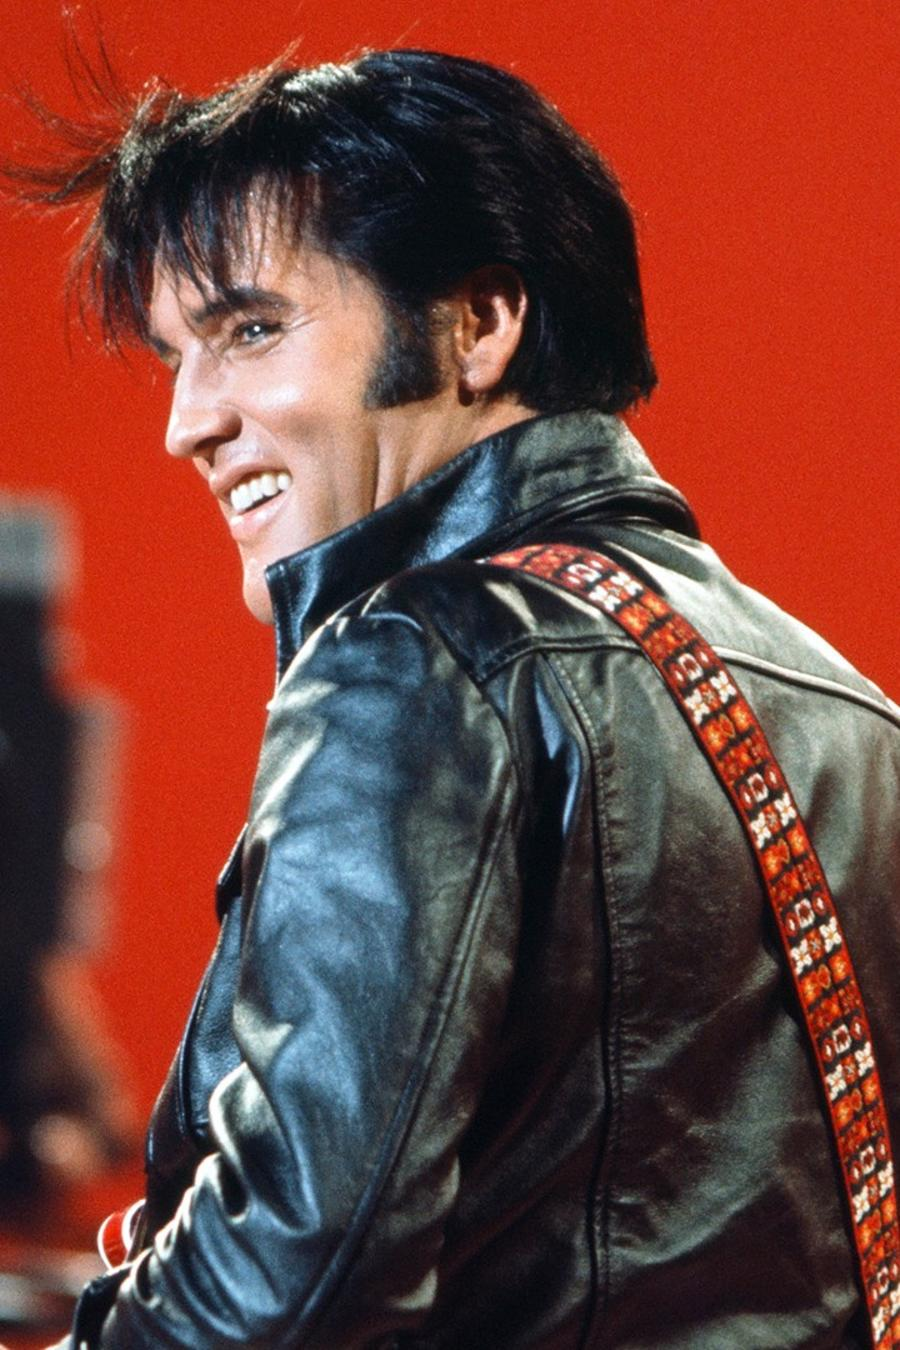 Elvis Presley during his '68 Comeback Special on NBC